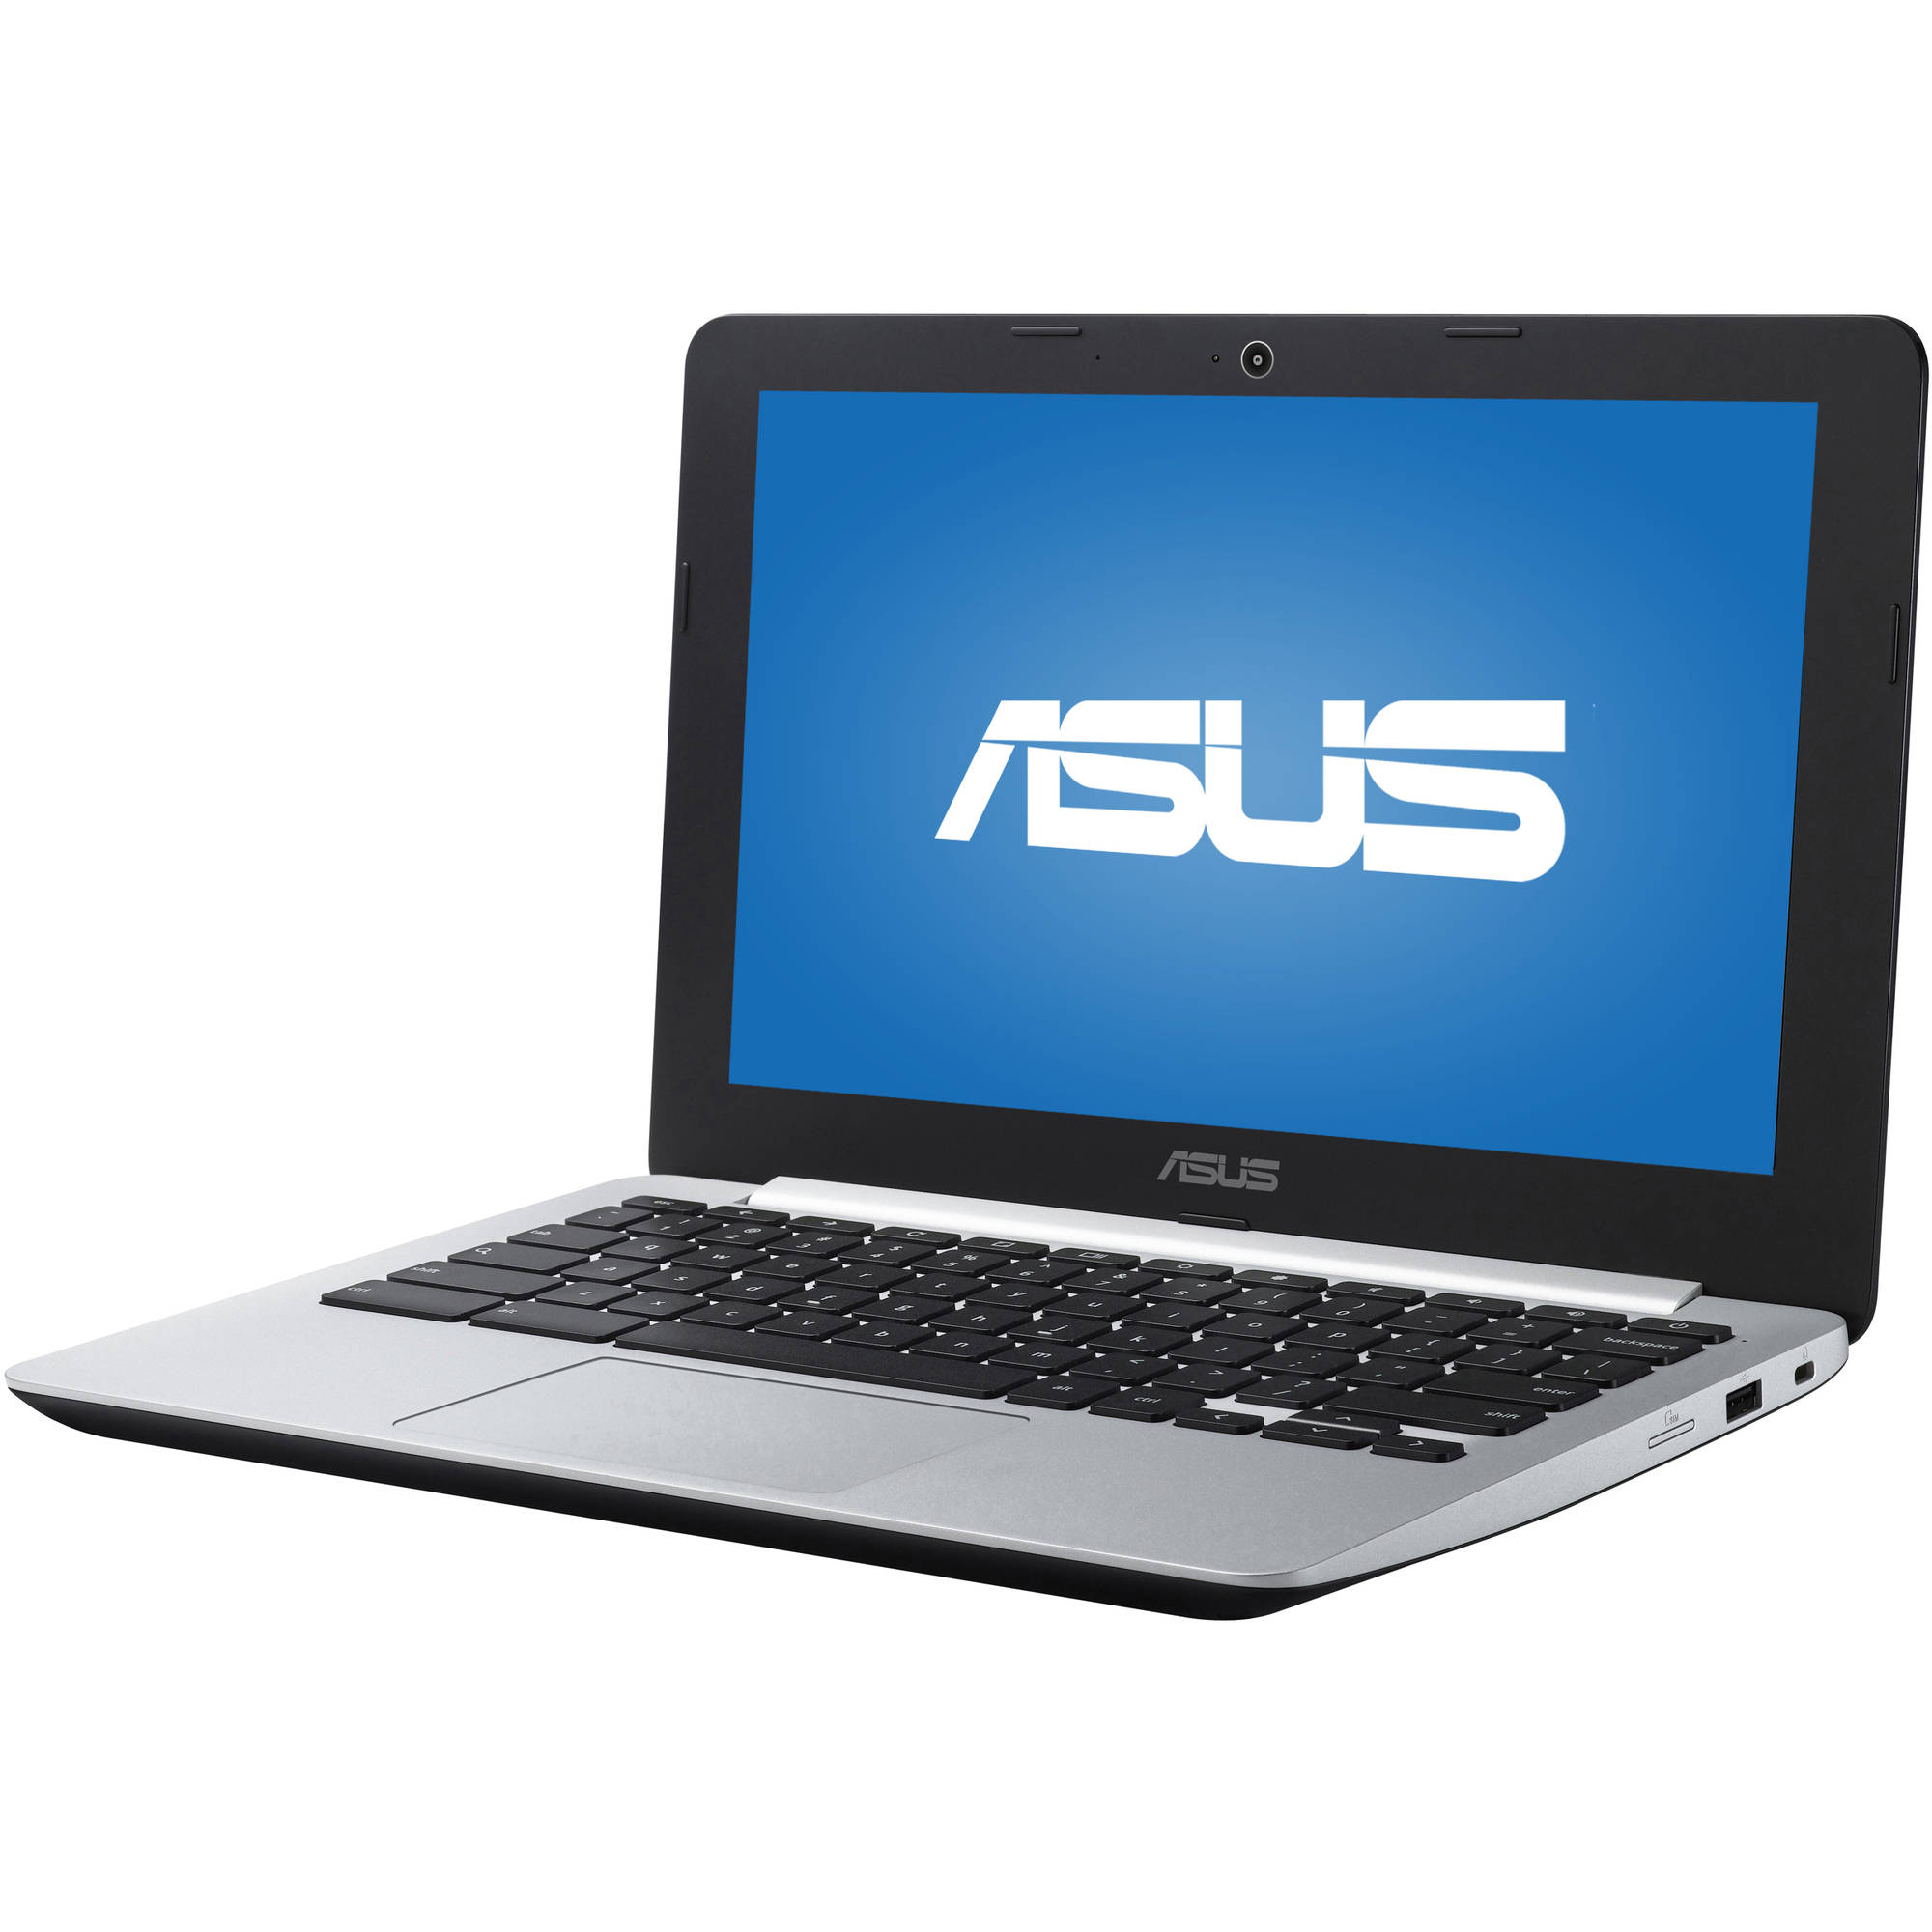 "ASUS Black 11.6"" C200MA-EDU2 Chromebook PC with Intel Celeron N2830 Processor, 4GB Memory, 16GB Solid State Drive and Chrome OS"